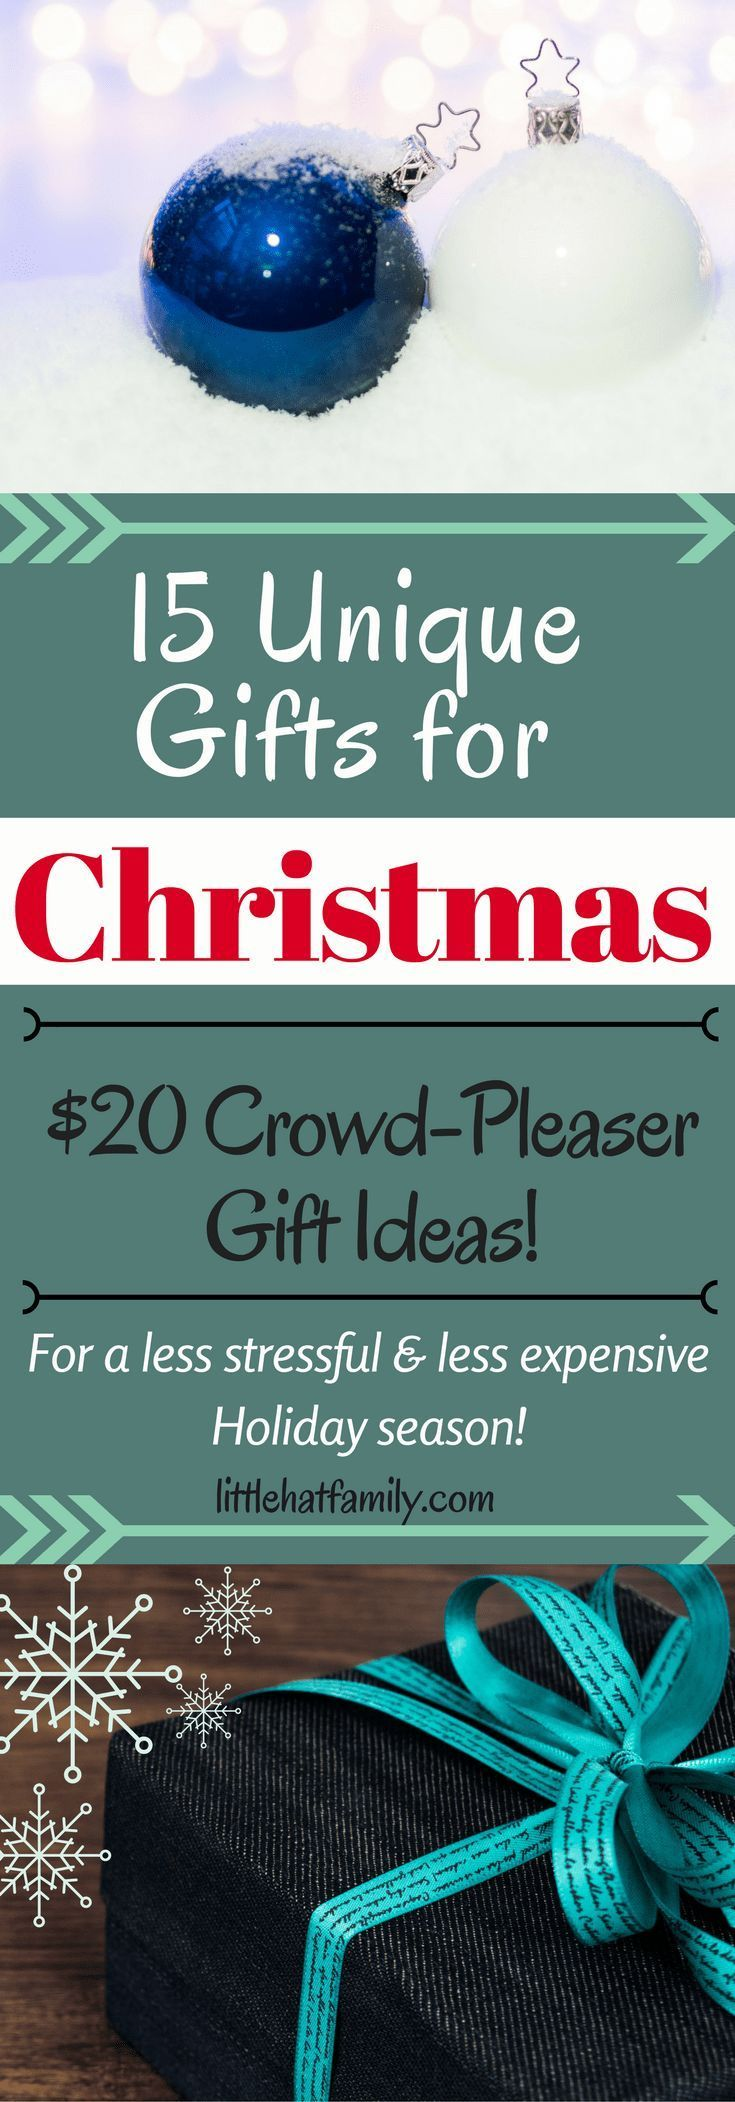 unique Christmas gifts, Christmas list, Holiday gift guide, $20 gifts, affordable Christmas